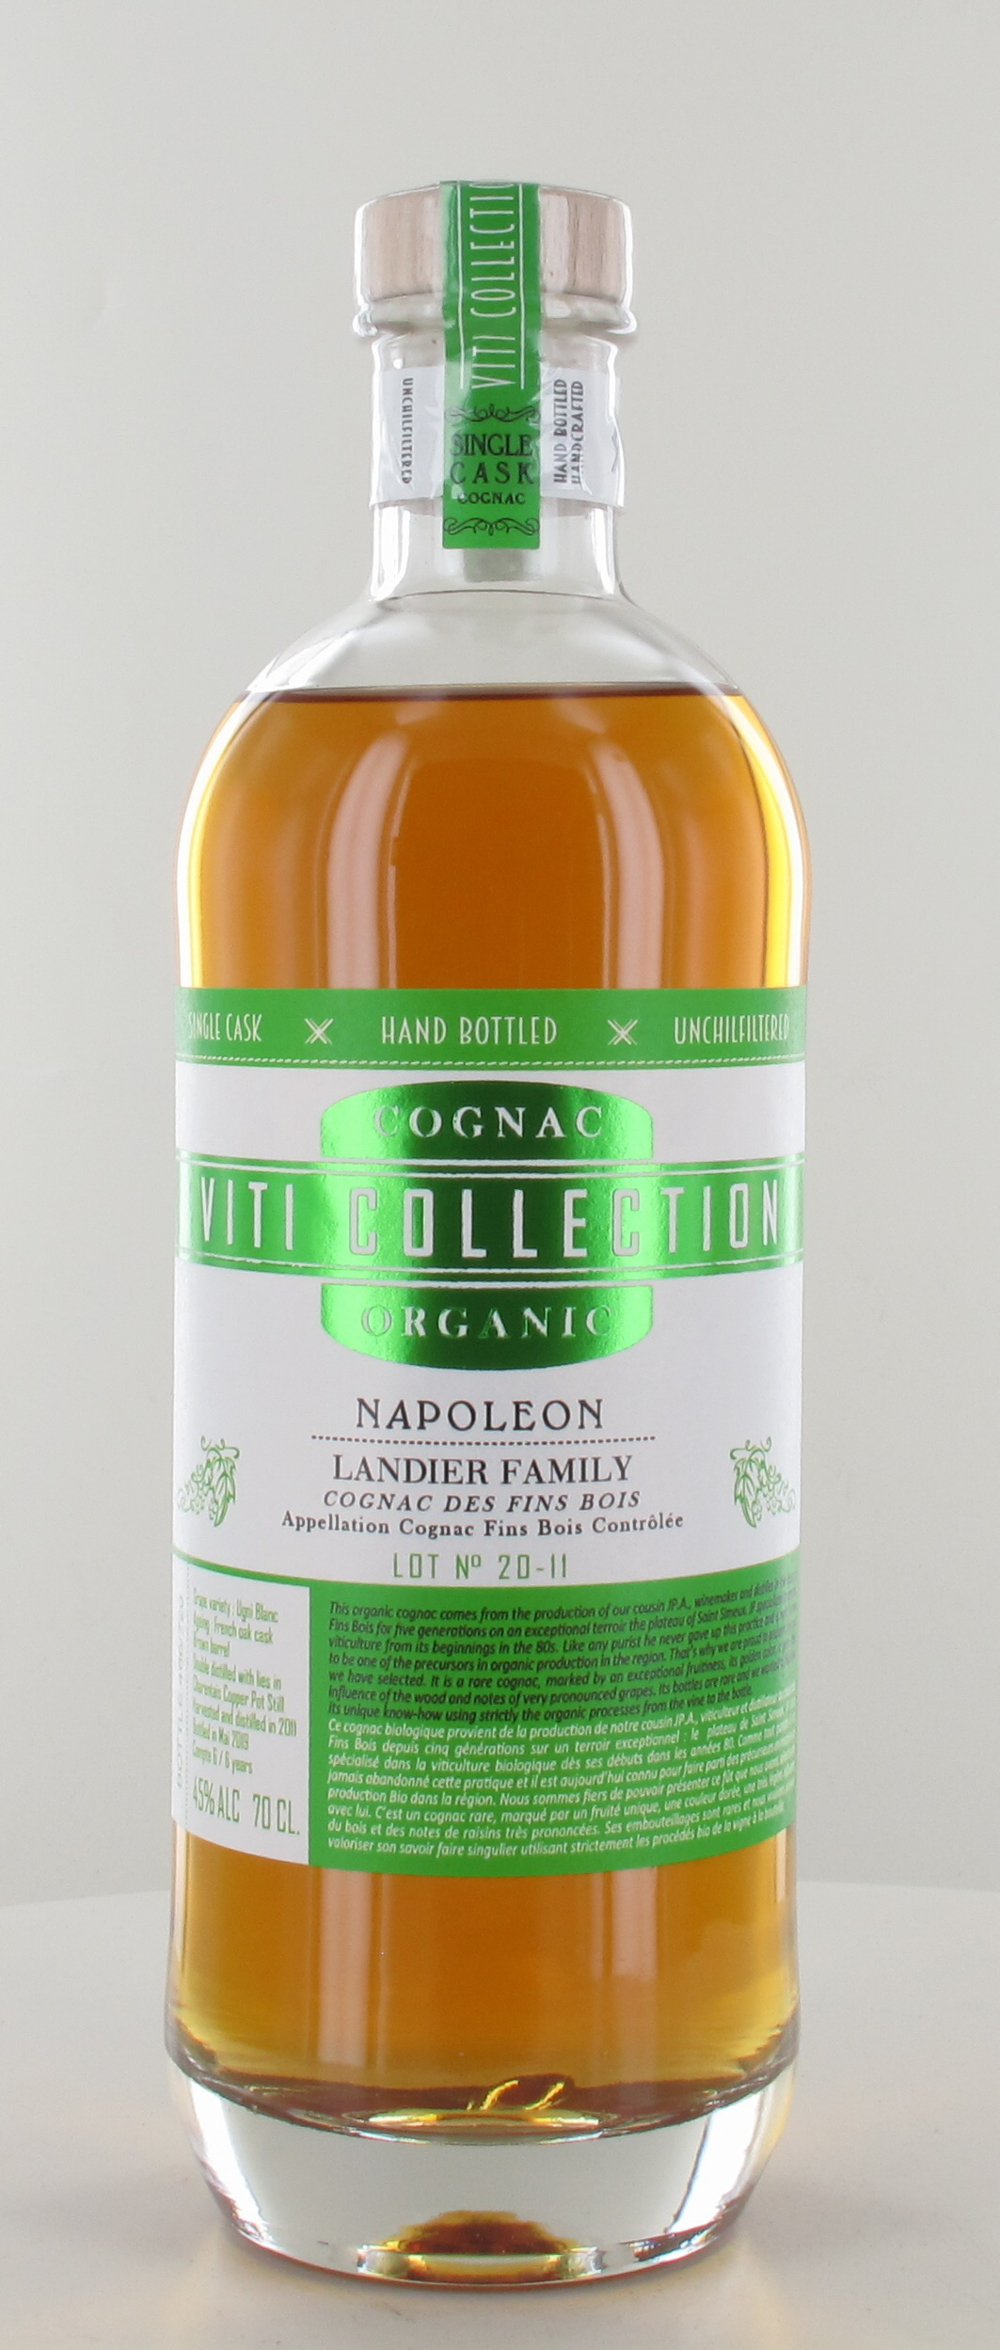 <p>VITI COLLECTION Bio Napoléon Fins Bois Single Cask Lot 20-11</p>